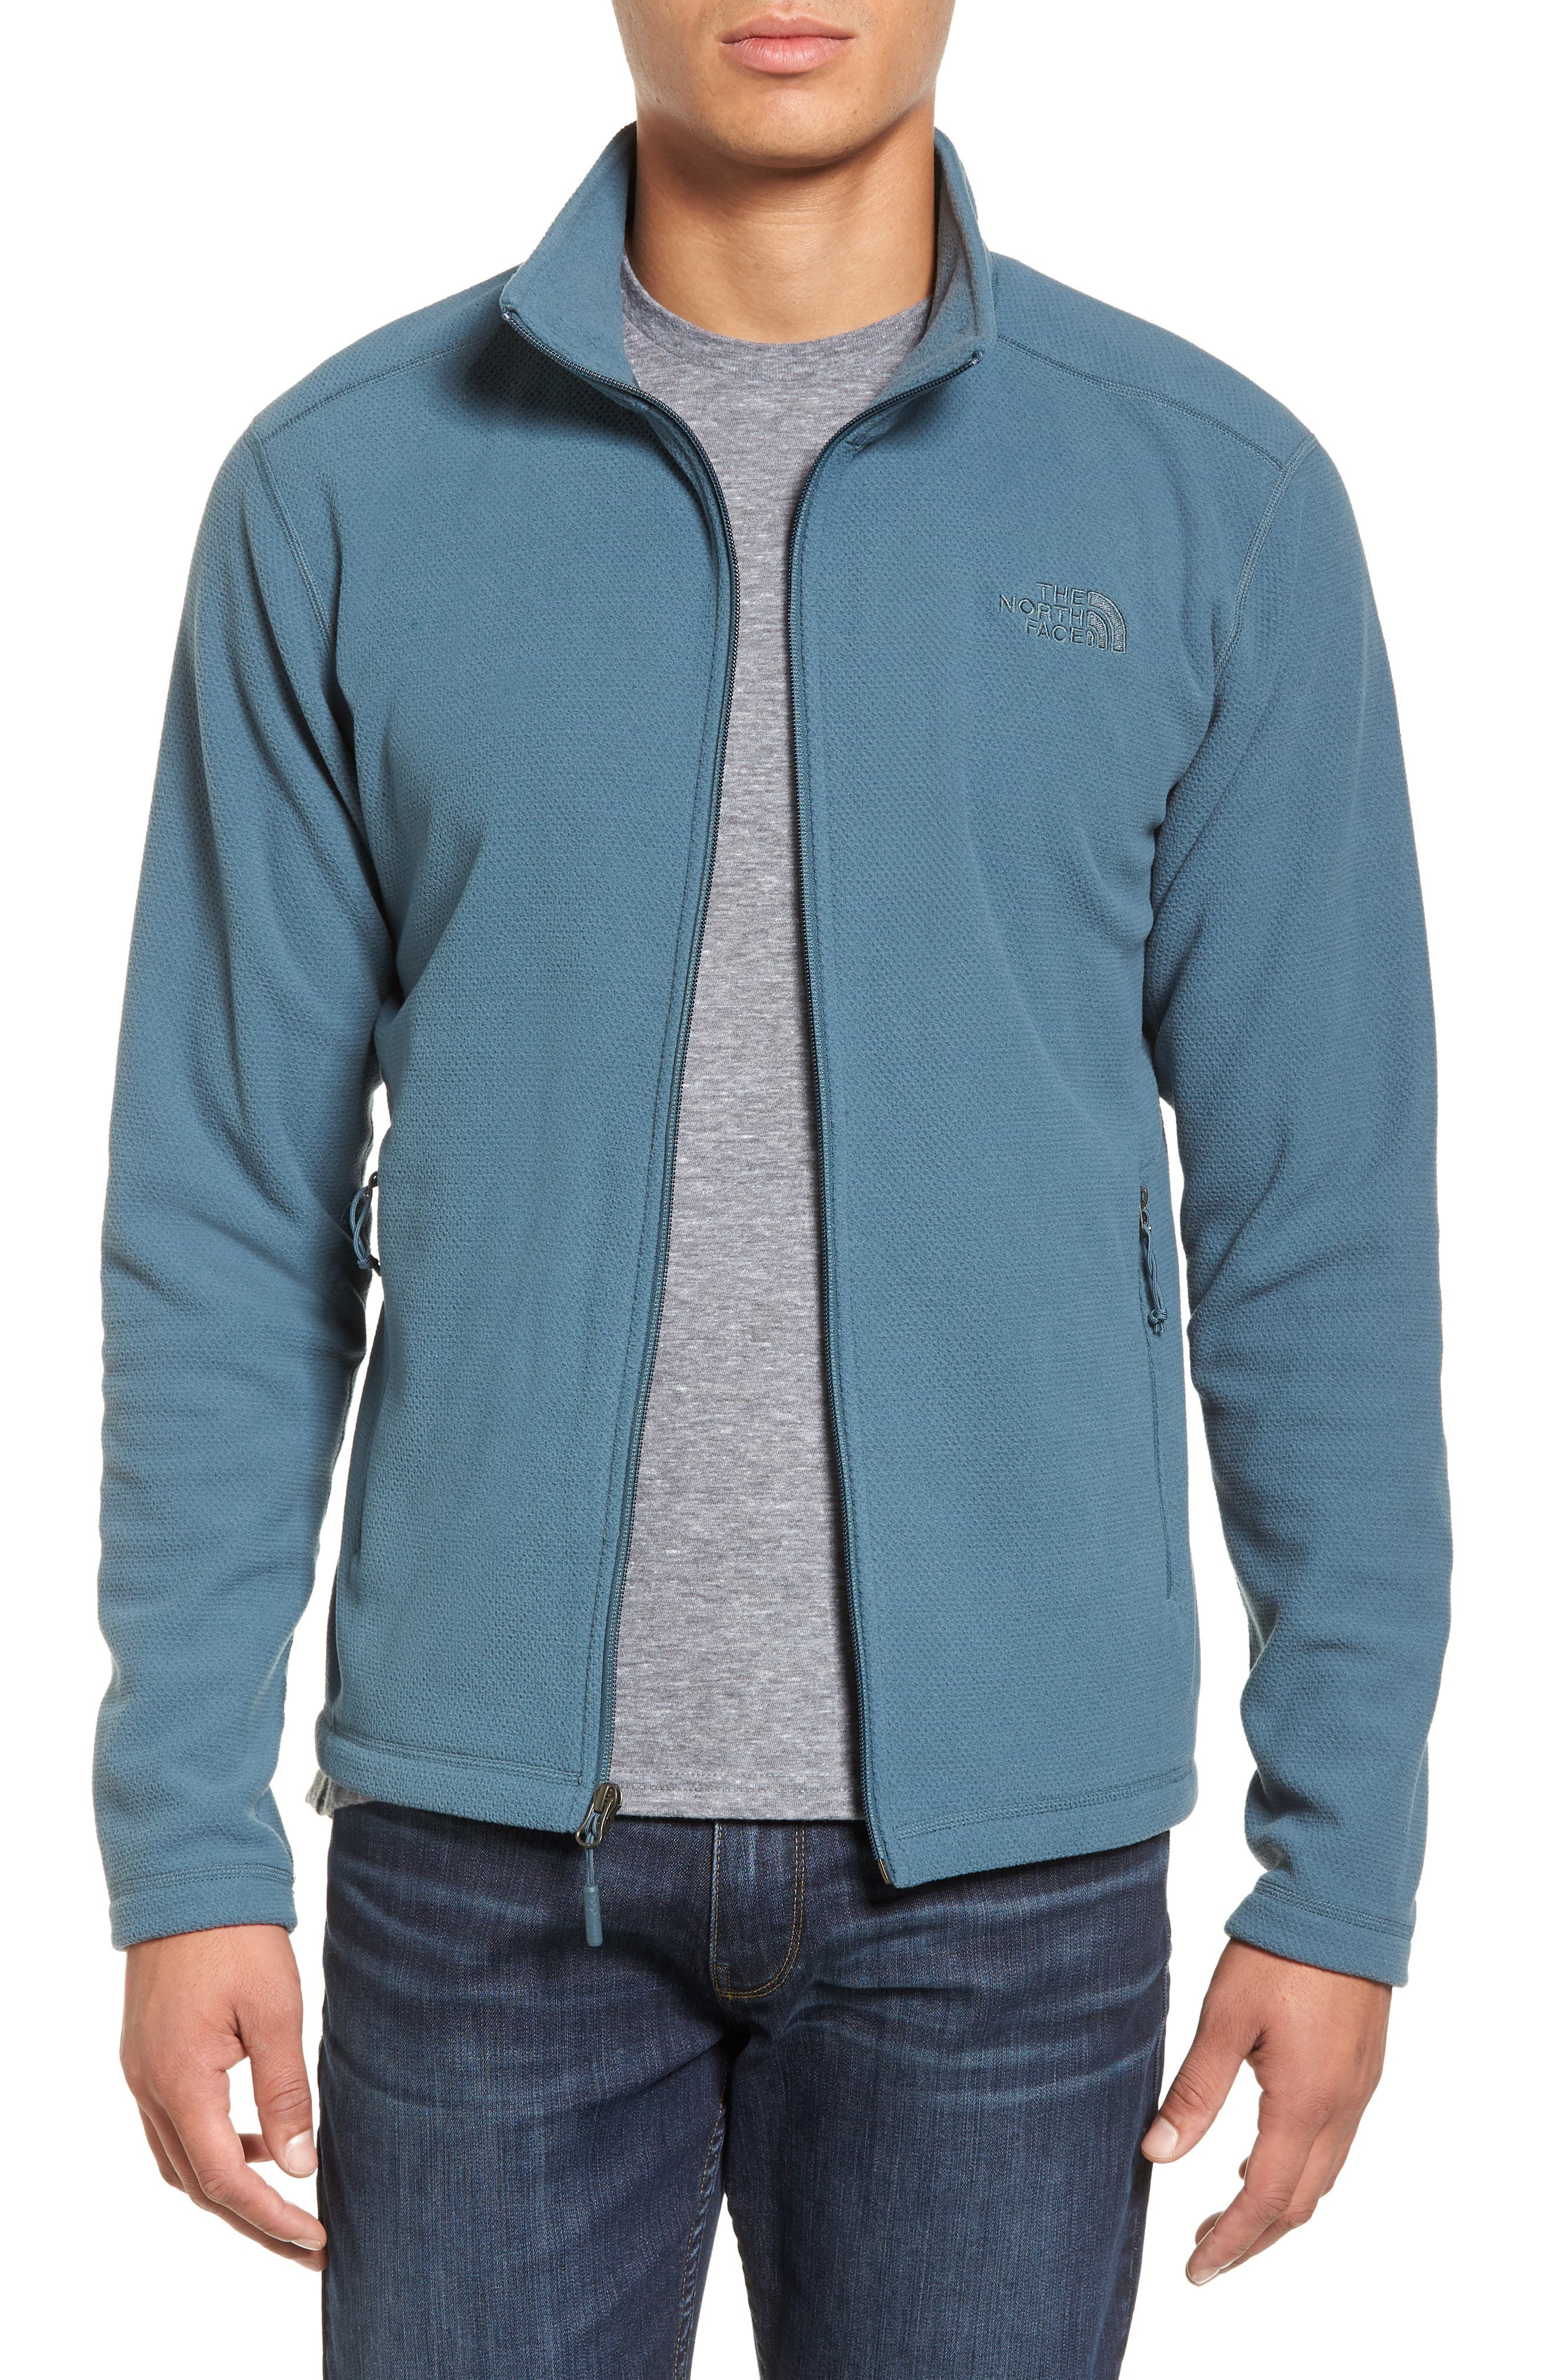 Cap Rock Fleece Jacket,                         Main,                         color, Conquer Blue